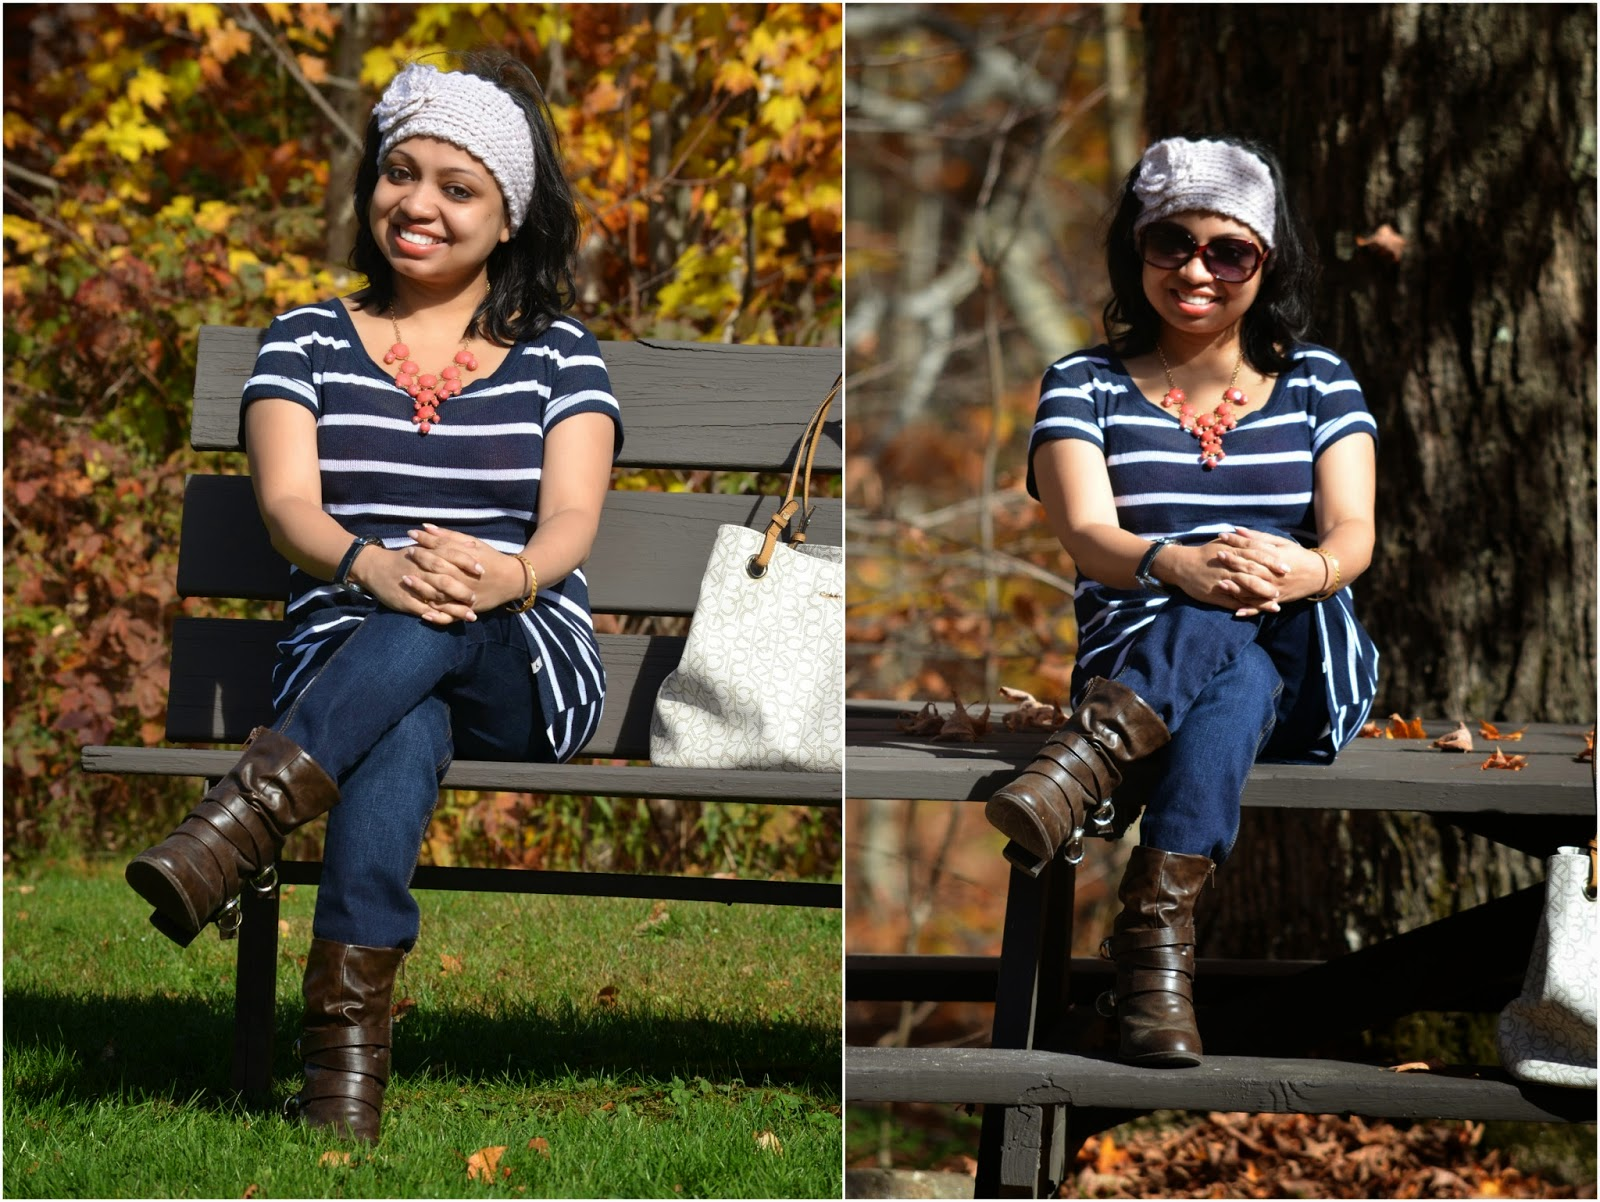 fall fashion, fall outfit, maternity fashion, fall OOTD, outfits in Vermont, Motherhood Jeans, Maternity Jeans, Hollister top, Hollister Sweater, Stripe sweater, brown leather boot, coral necklace, Calvin klein tote